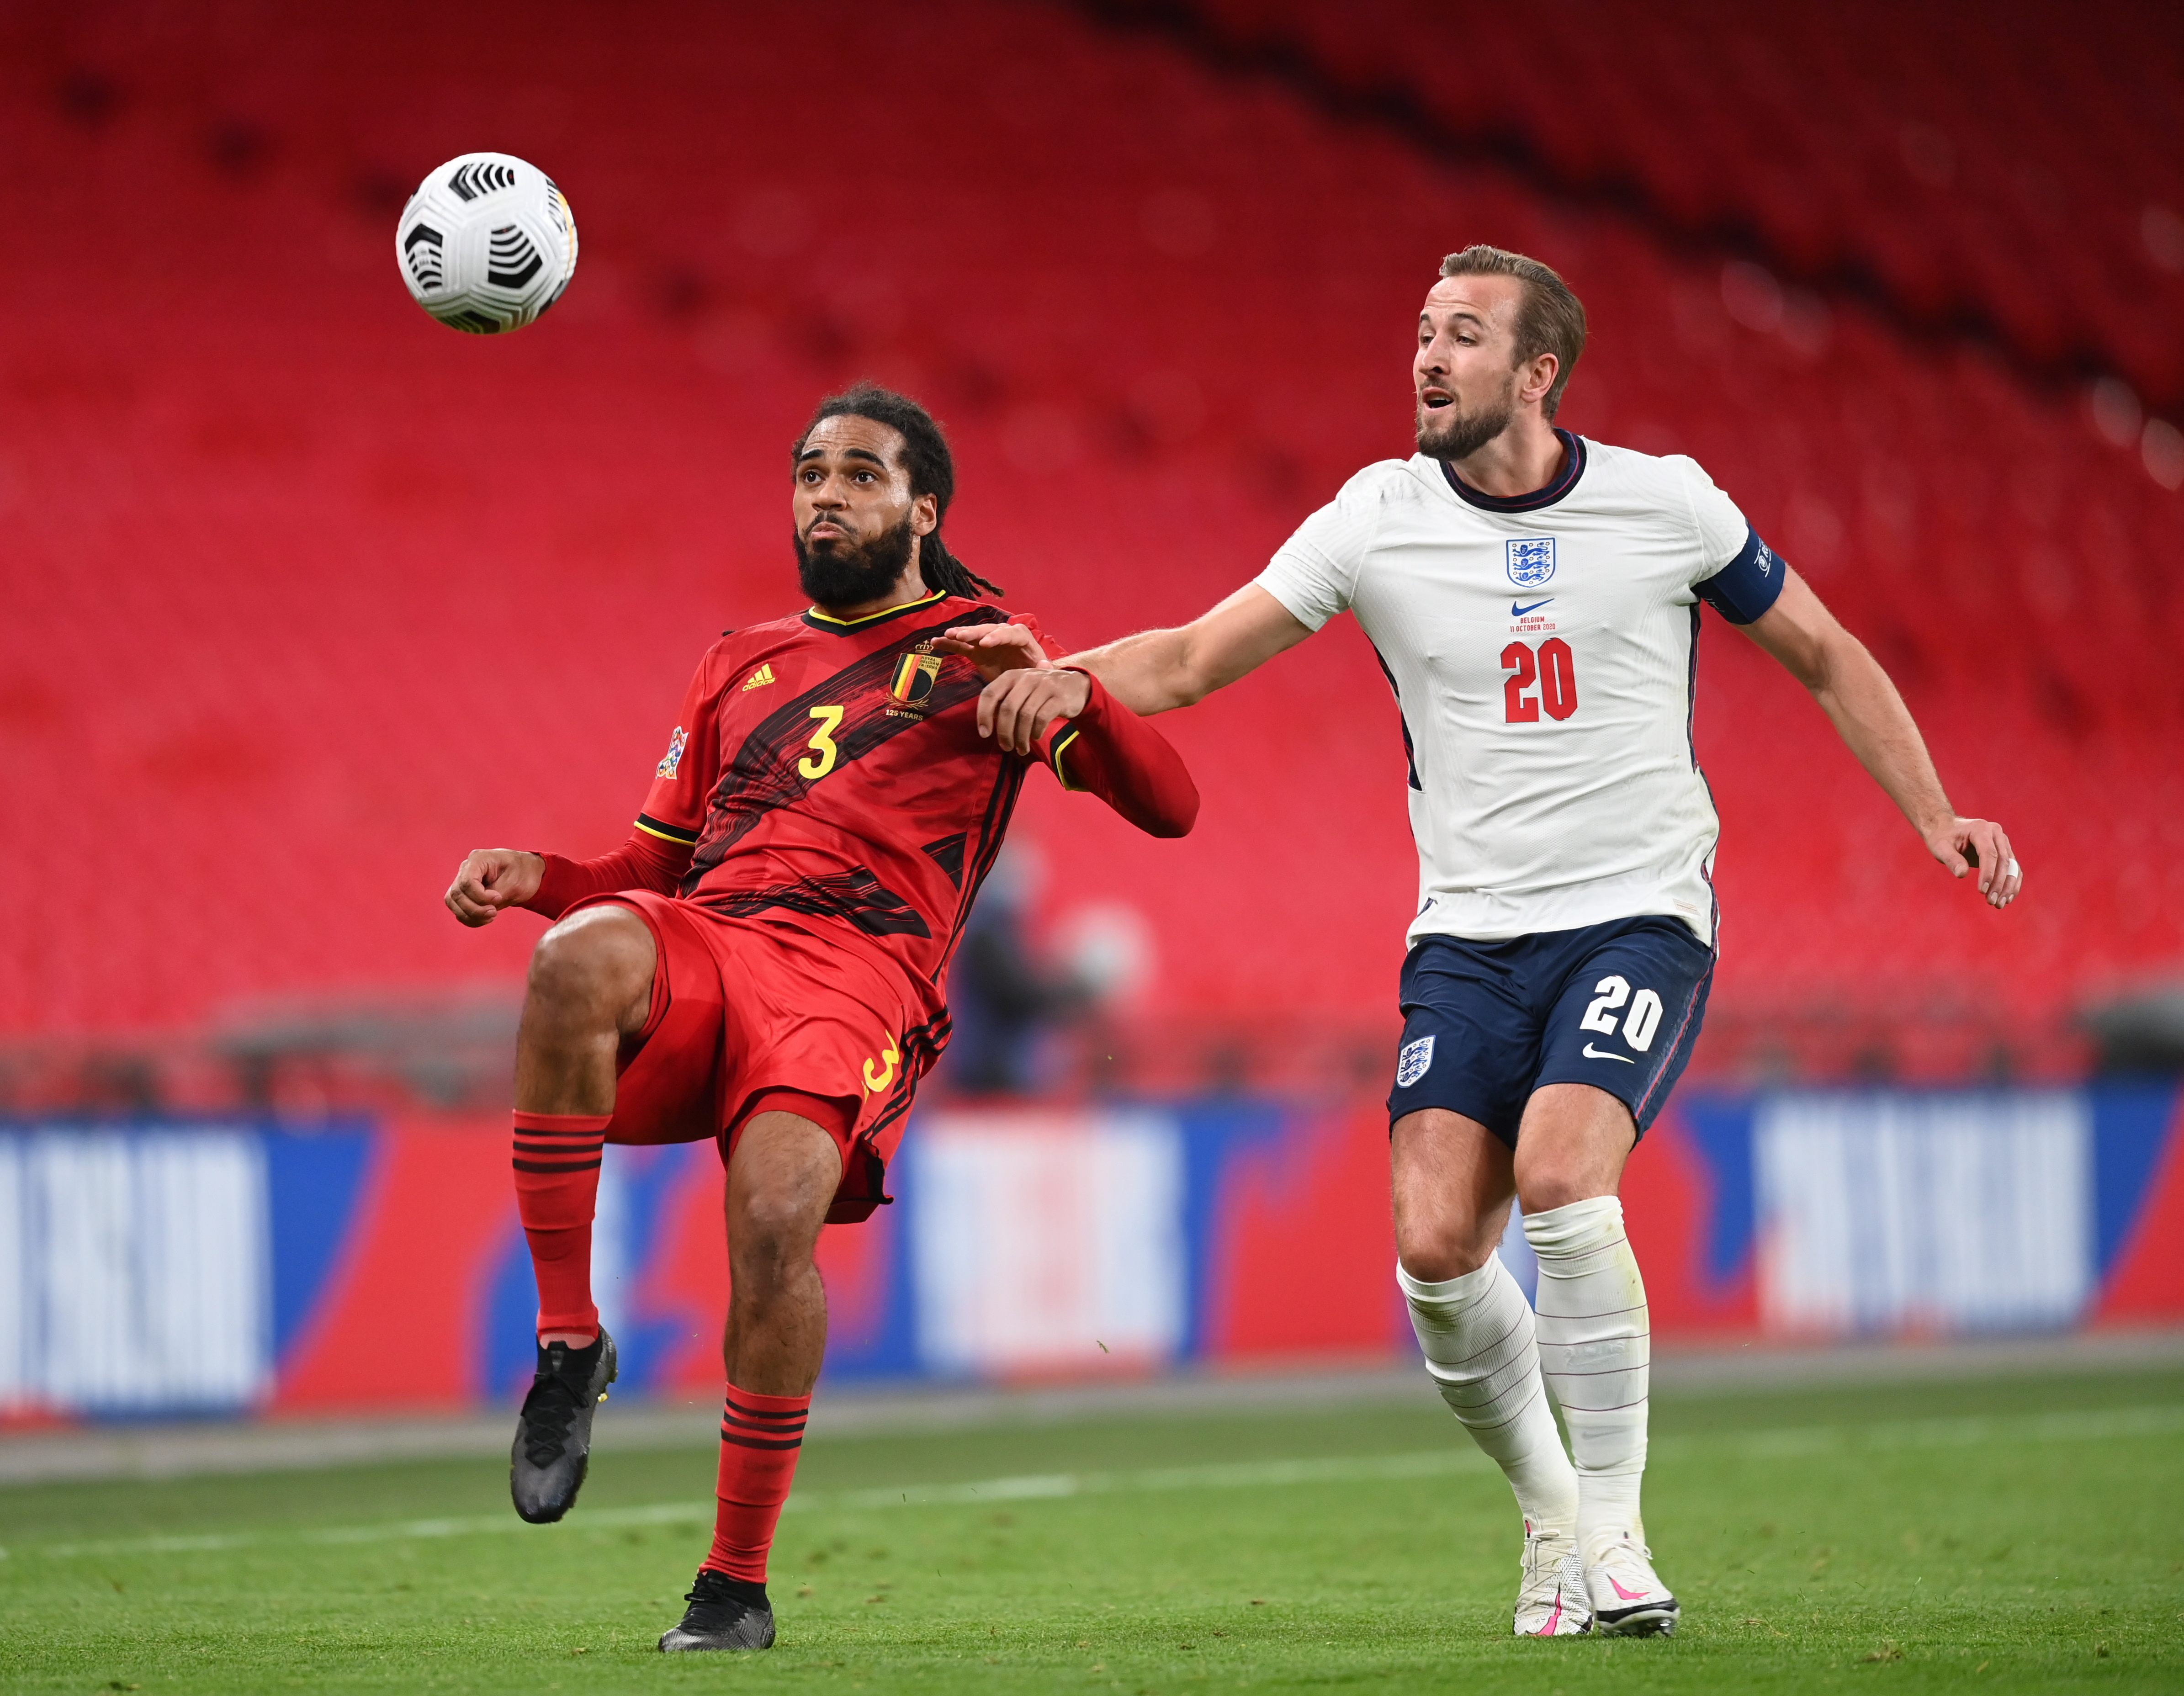 14/10/2020 Daily Predictions: UEFA Nations League 2020-21